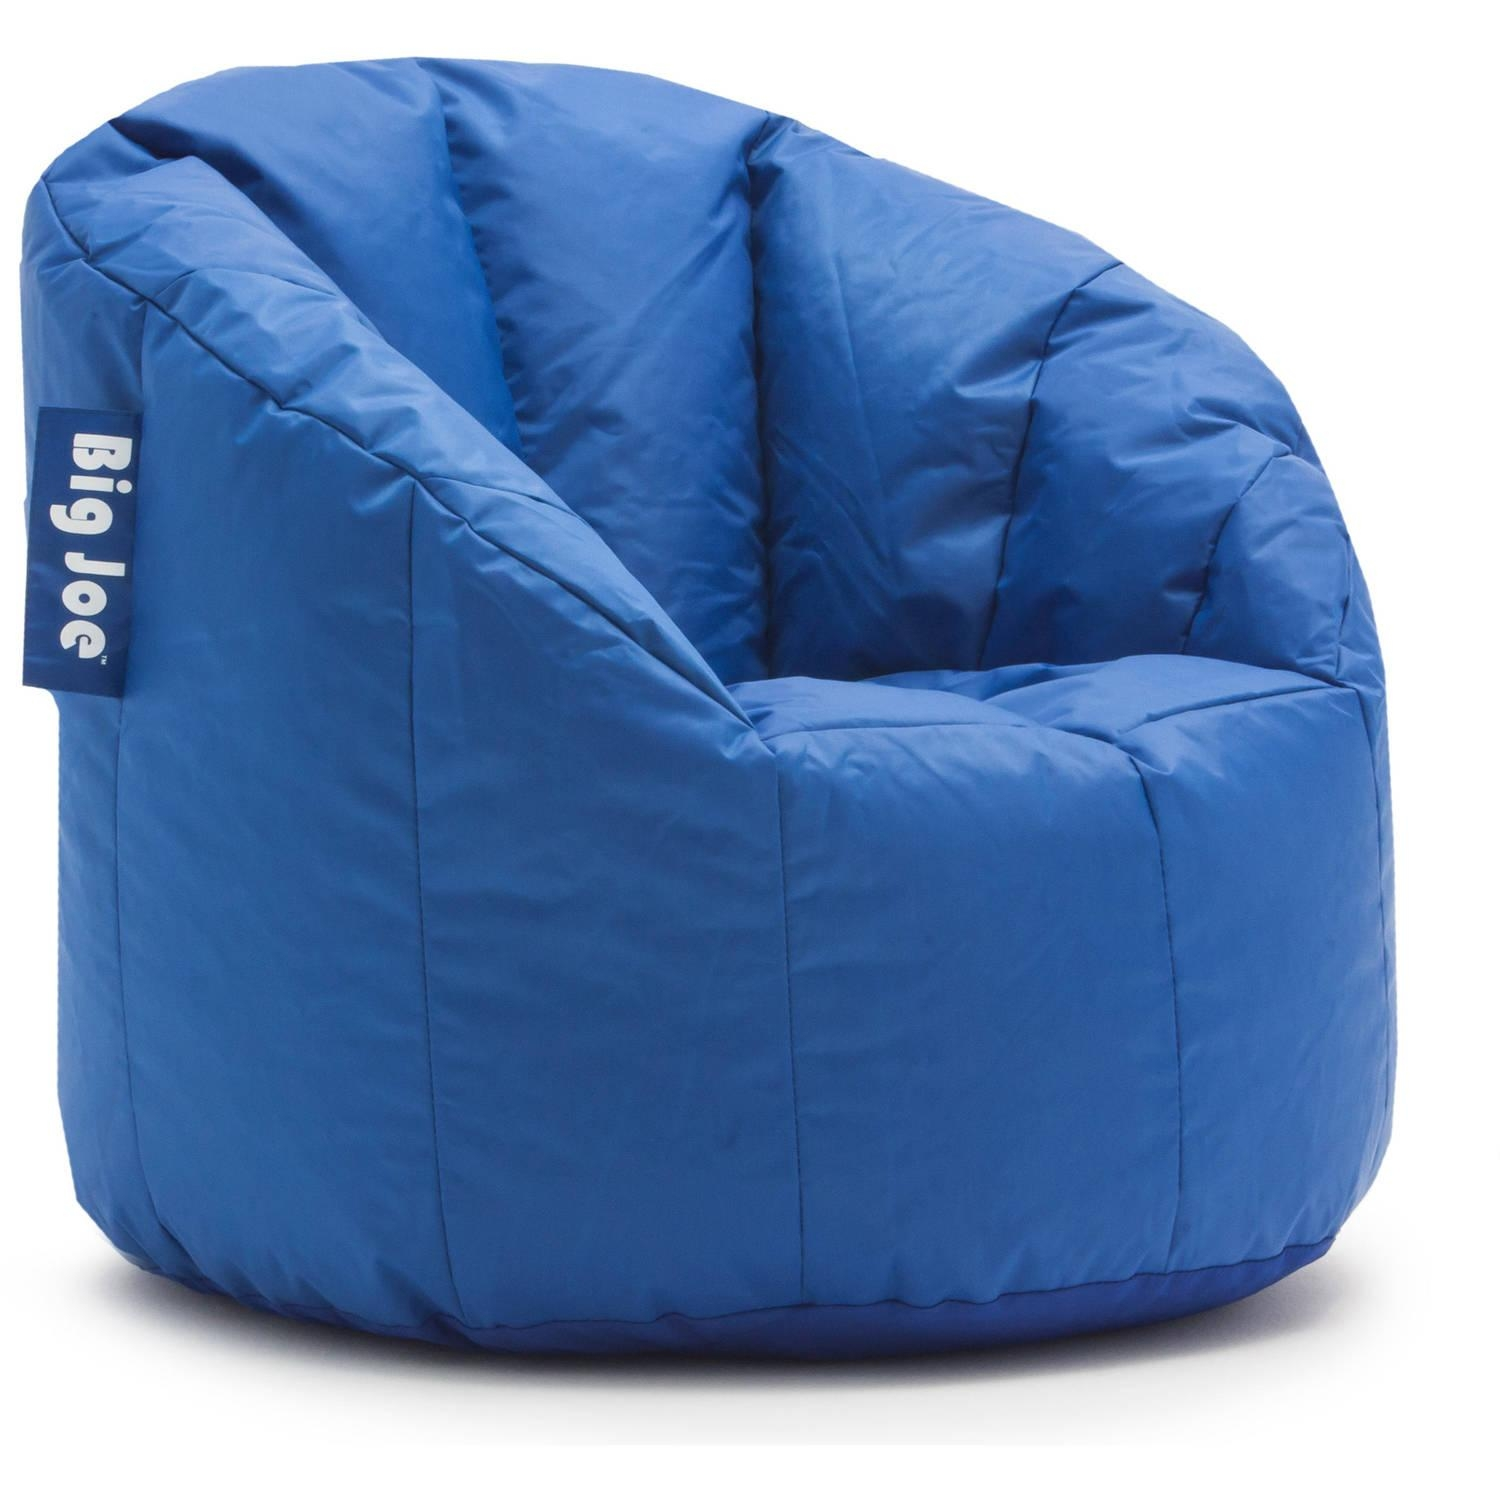 20 Top Bean Bag Sofa Chairs Sofa Ideas